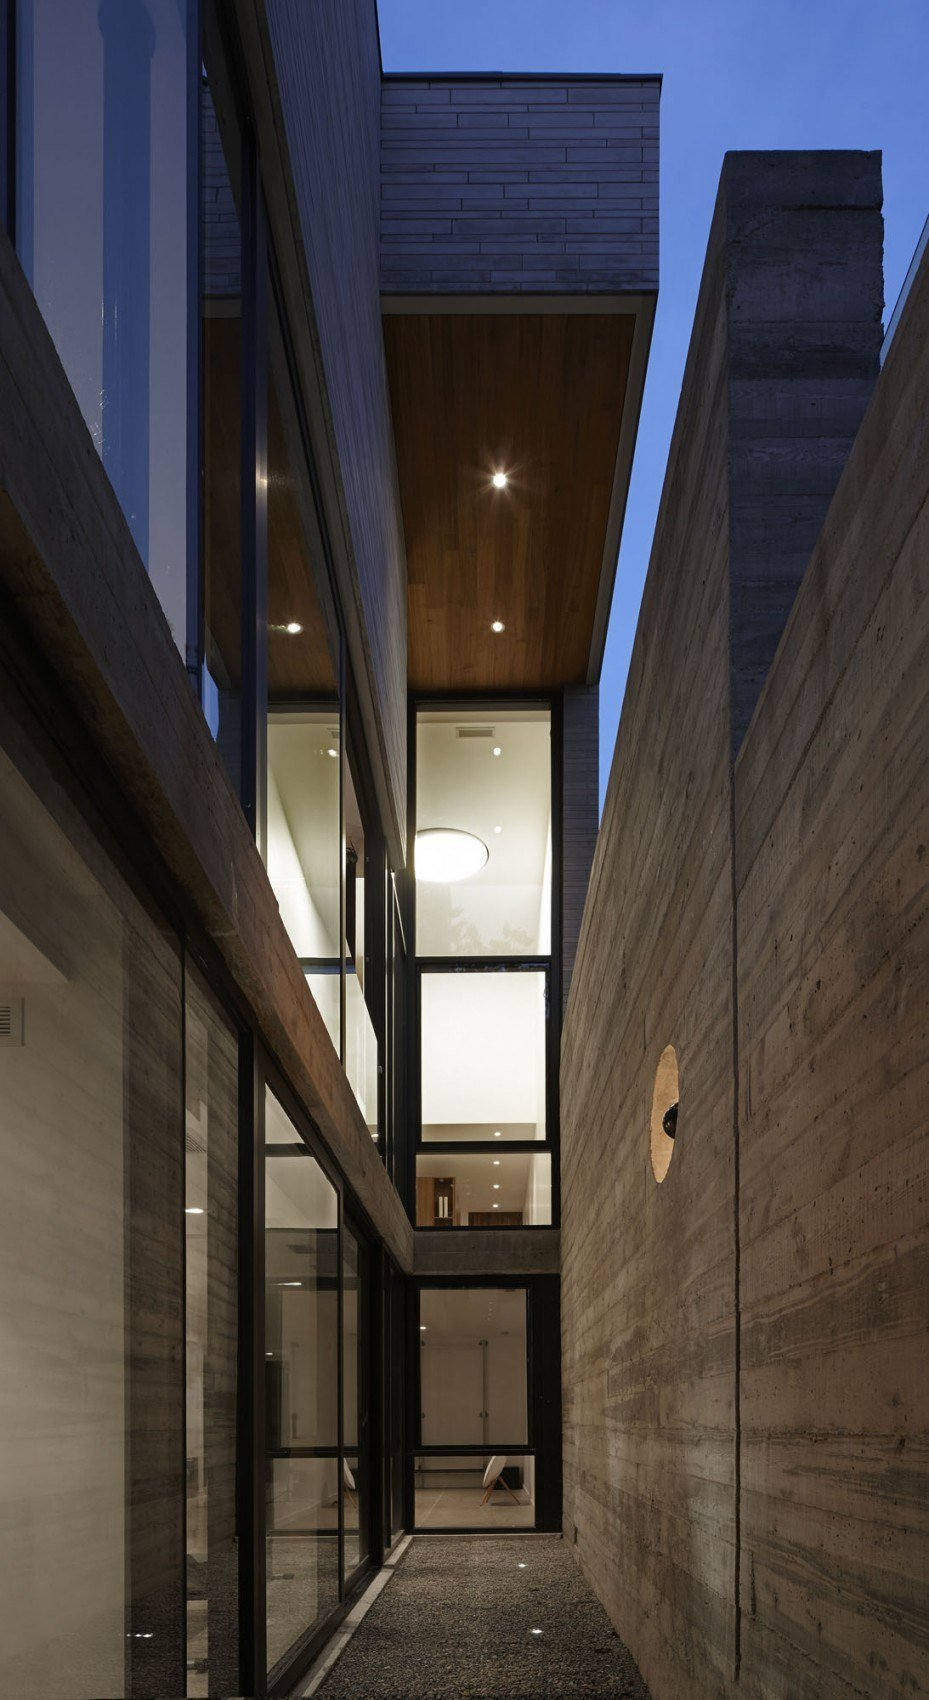 Moore-Park-Residence-by-Drew-Mandel-Architects-10